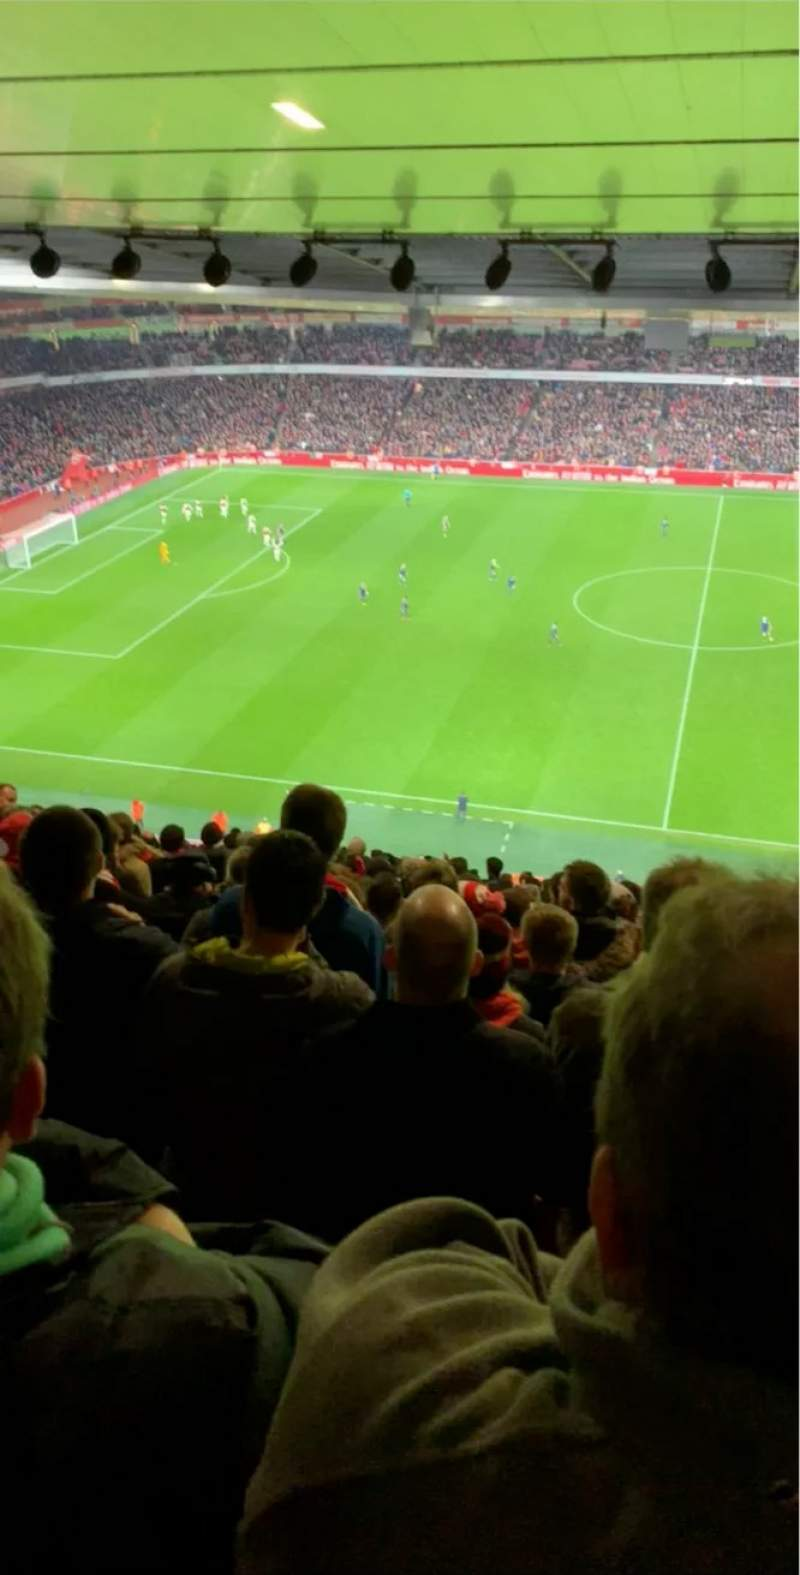 Seating view for Emirates Stadium Section 134 Row 25 Seat 1208